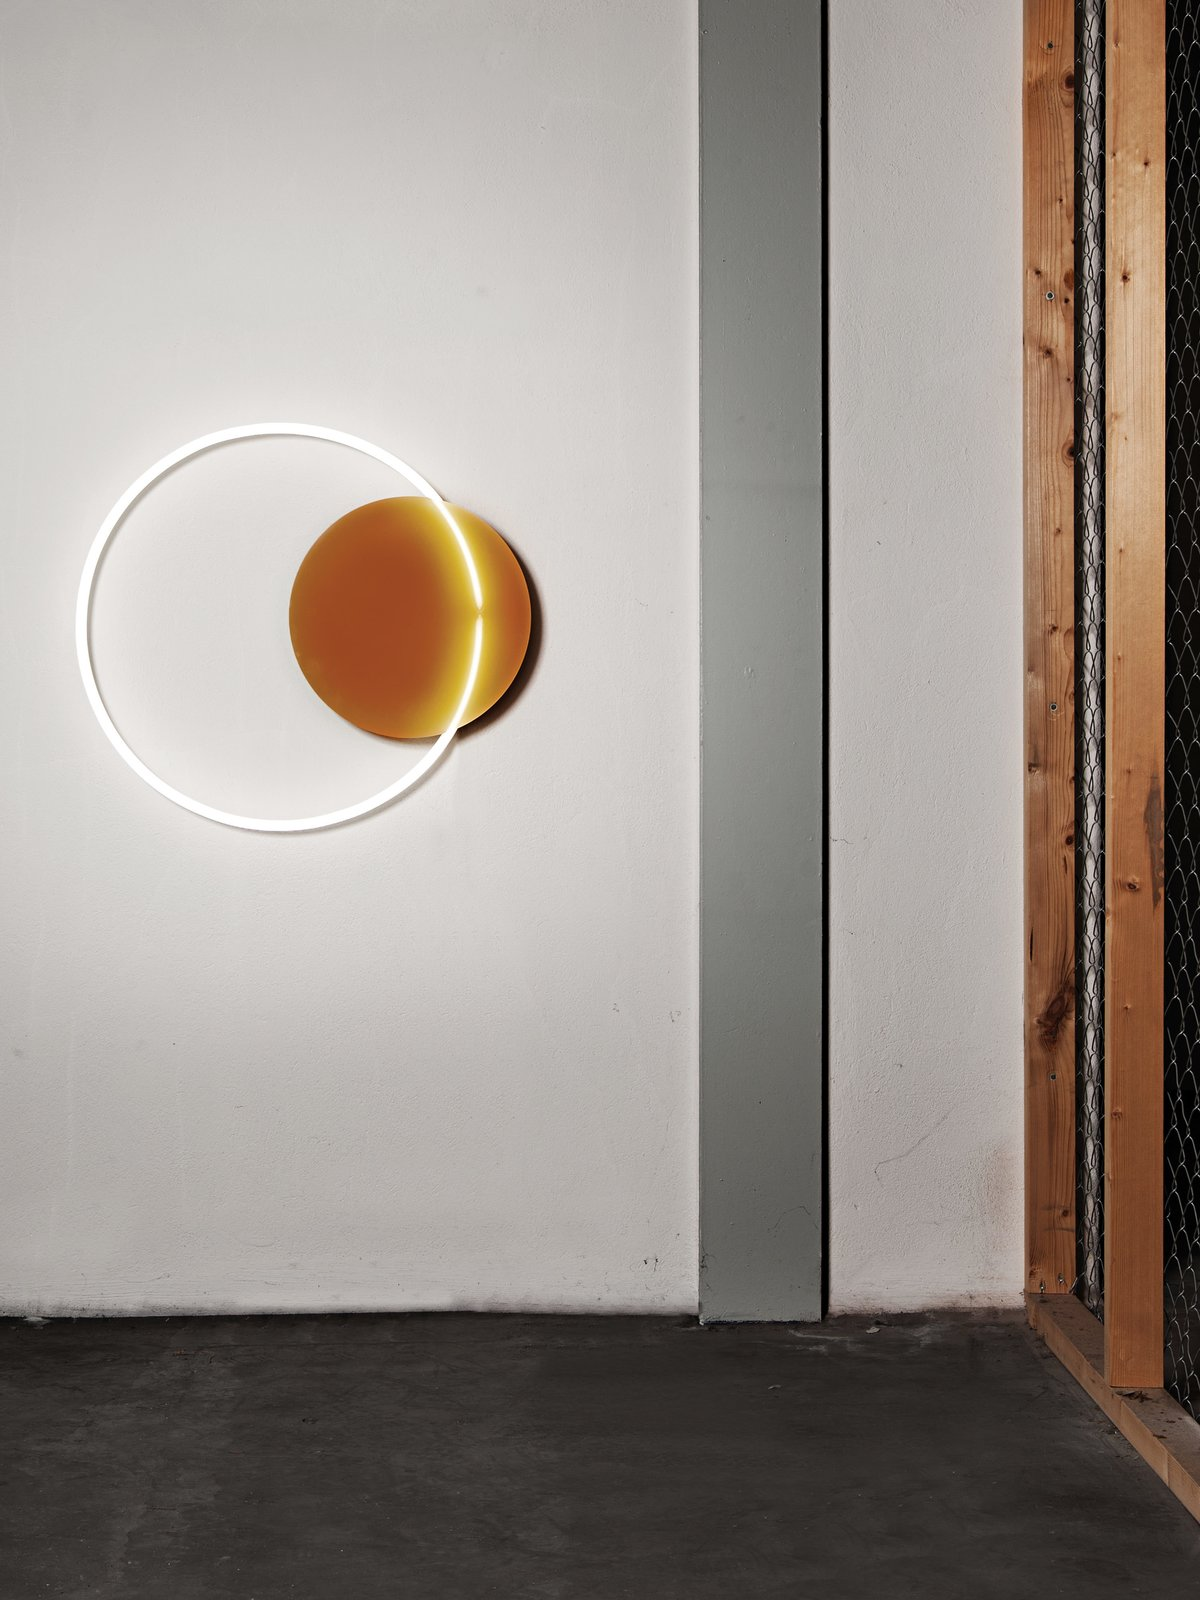 A lighting piece from Sabine Marcelis's VOIE light series #1, made from neon and cast polyester resin.